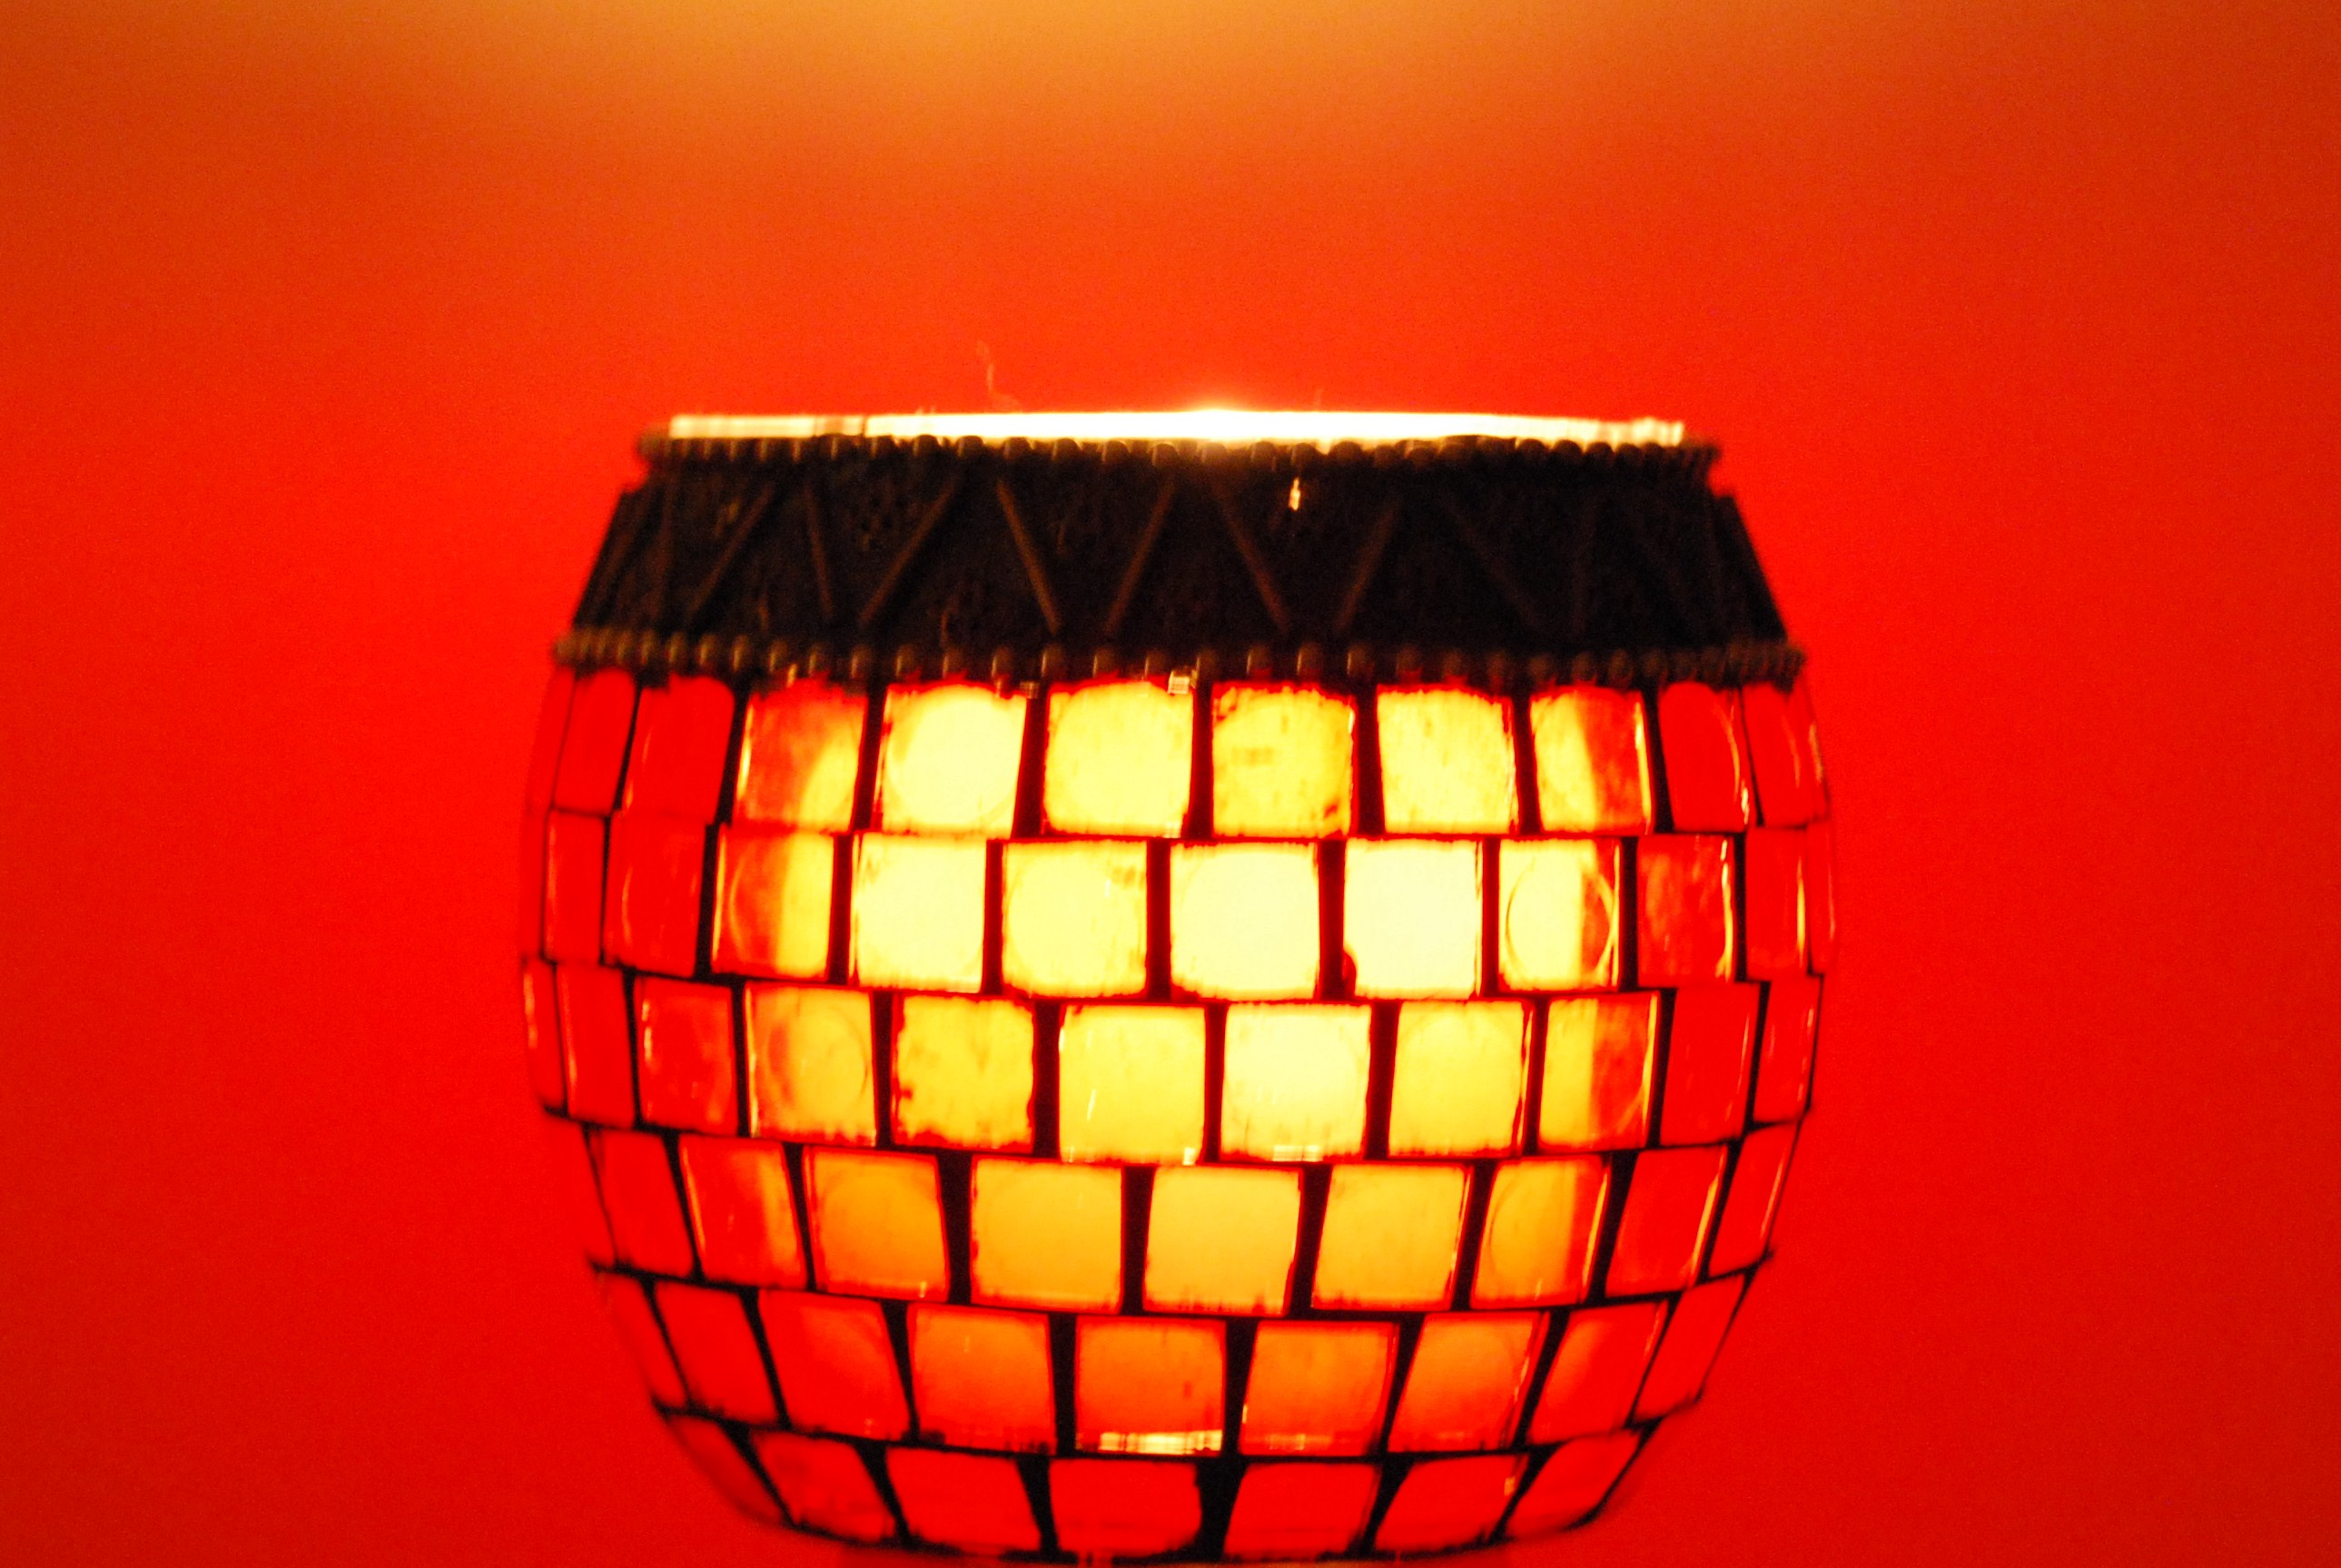 Red lamp, Amber, Candle, Glow, Lamp, HQ Photo